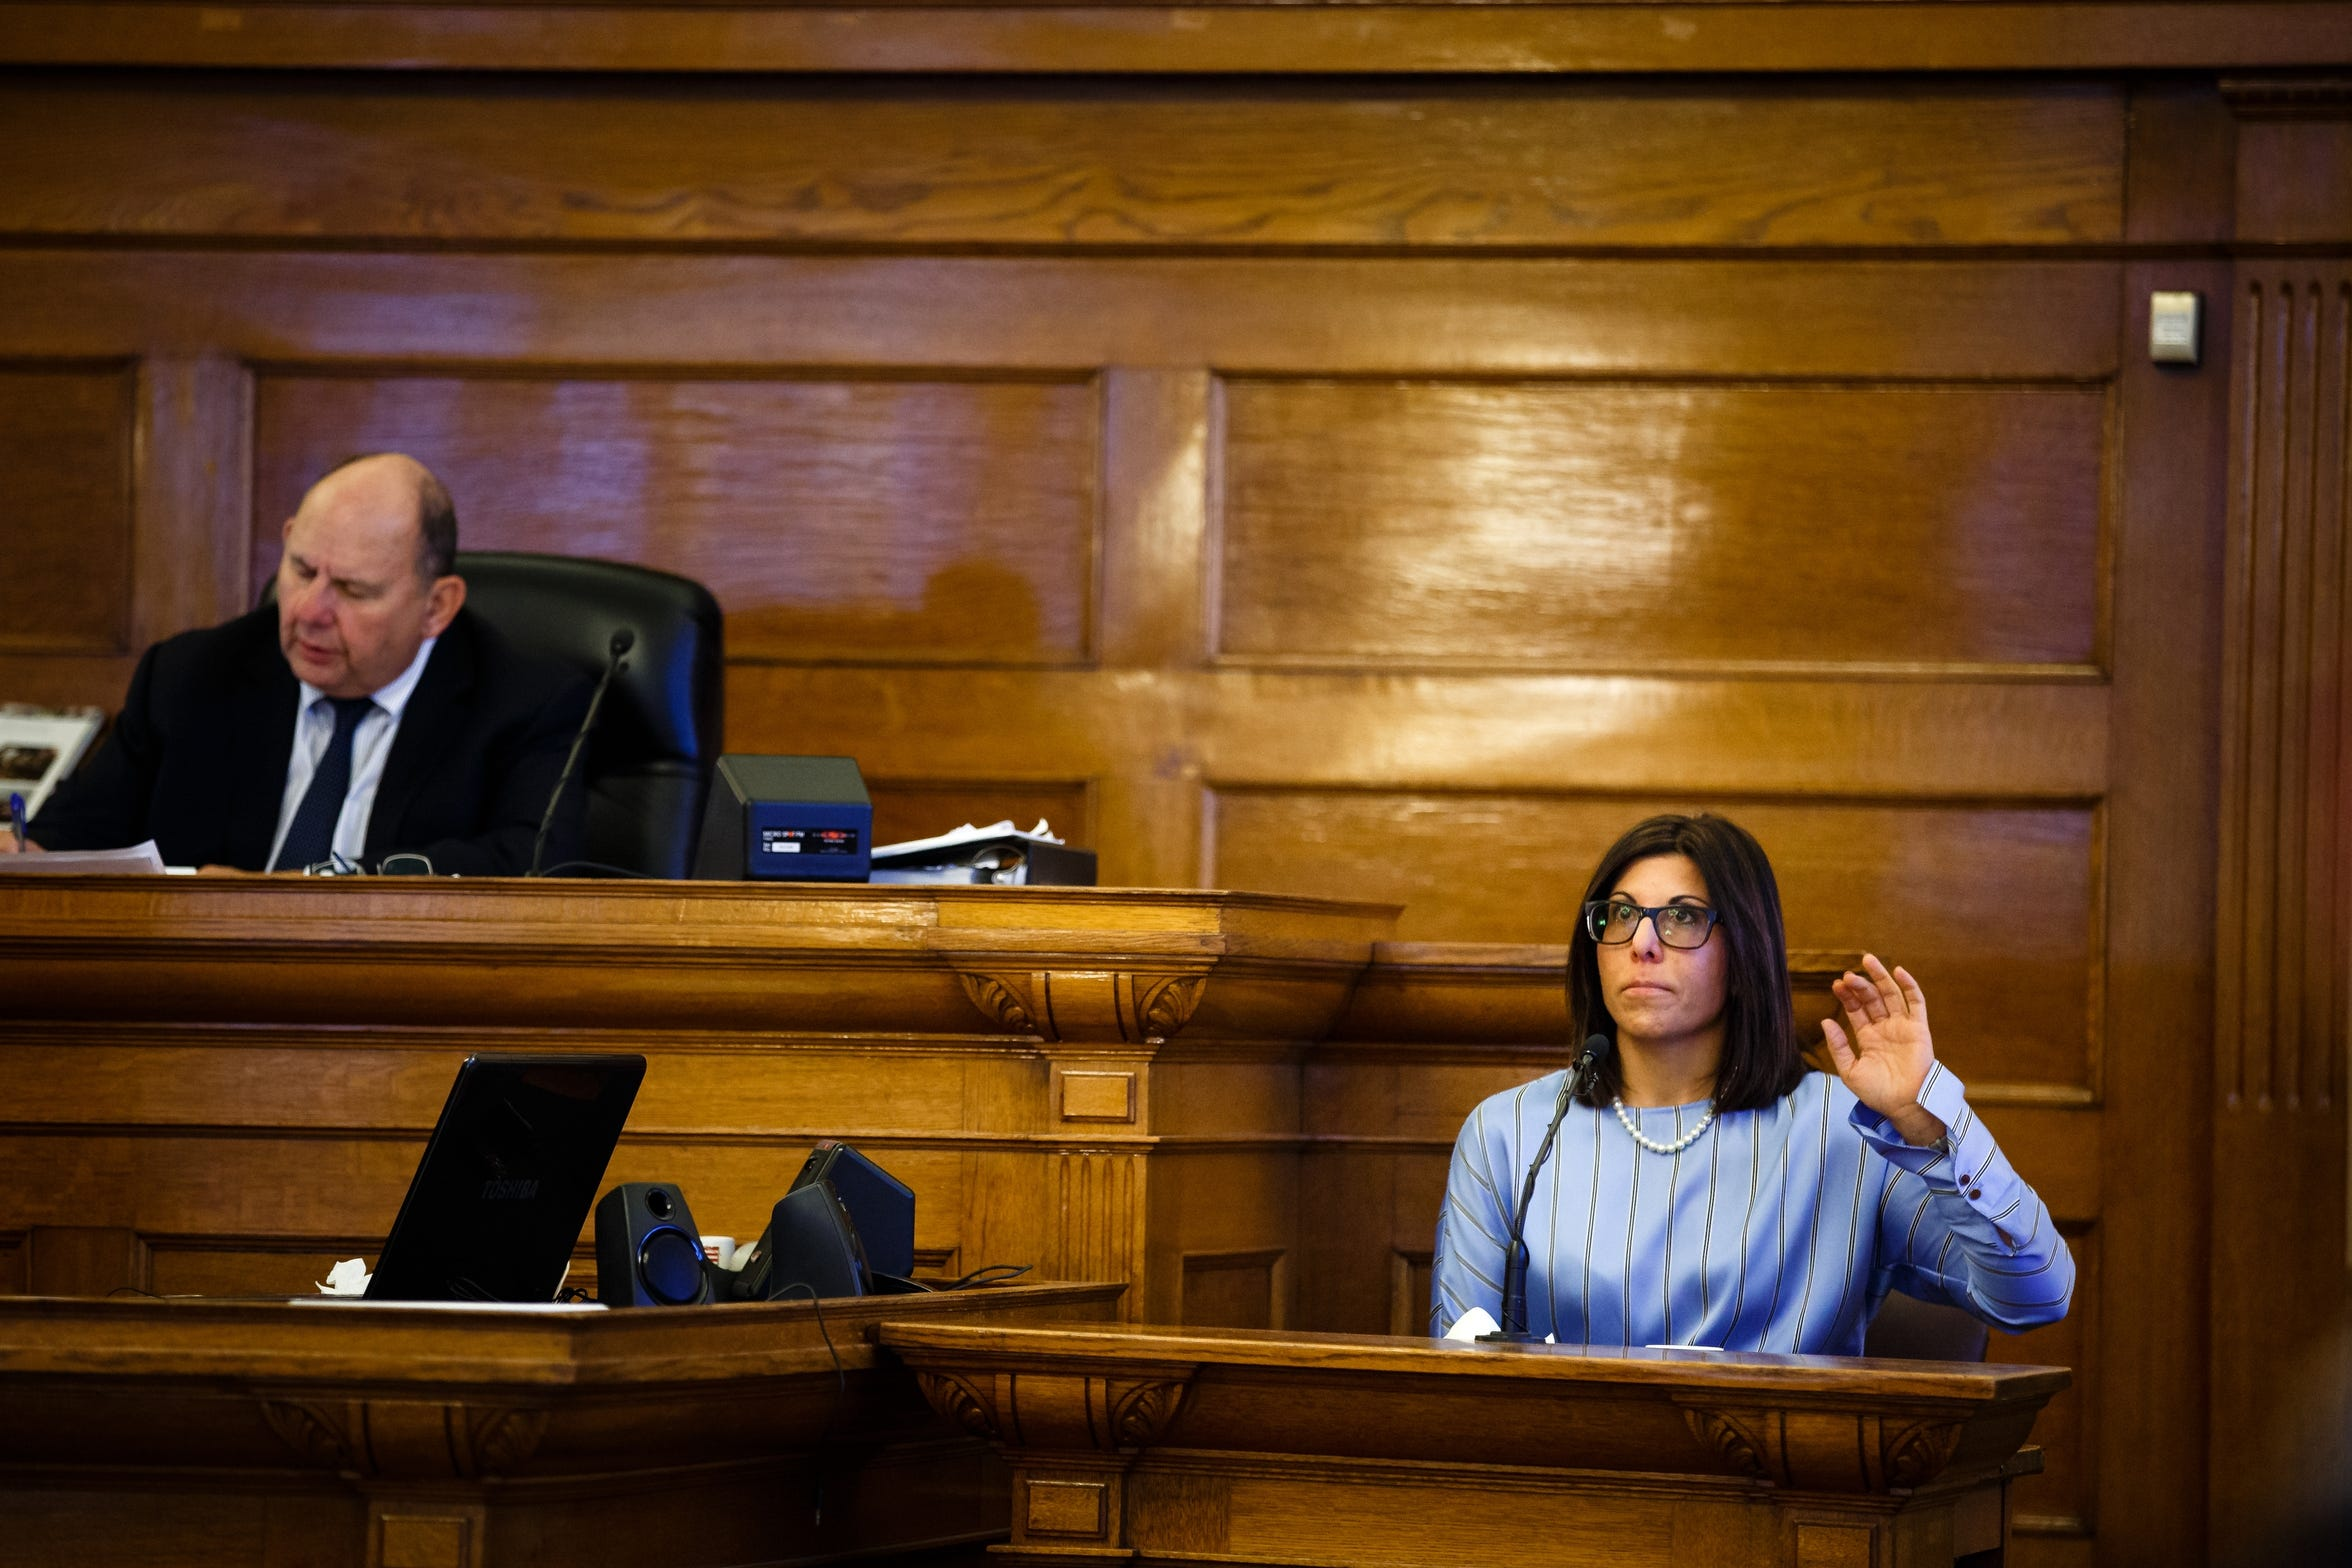 Gina Battani prepares to testify against her ex-husband Troy Griffin in his marital rape trial at the Dallas County Courthouse on Tuesday, Oct. 23, 2018, in Adel. The jury found Griffin not guilty on all counts.